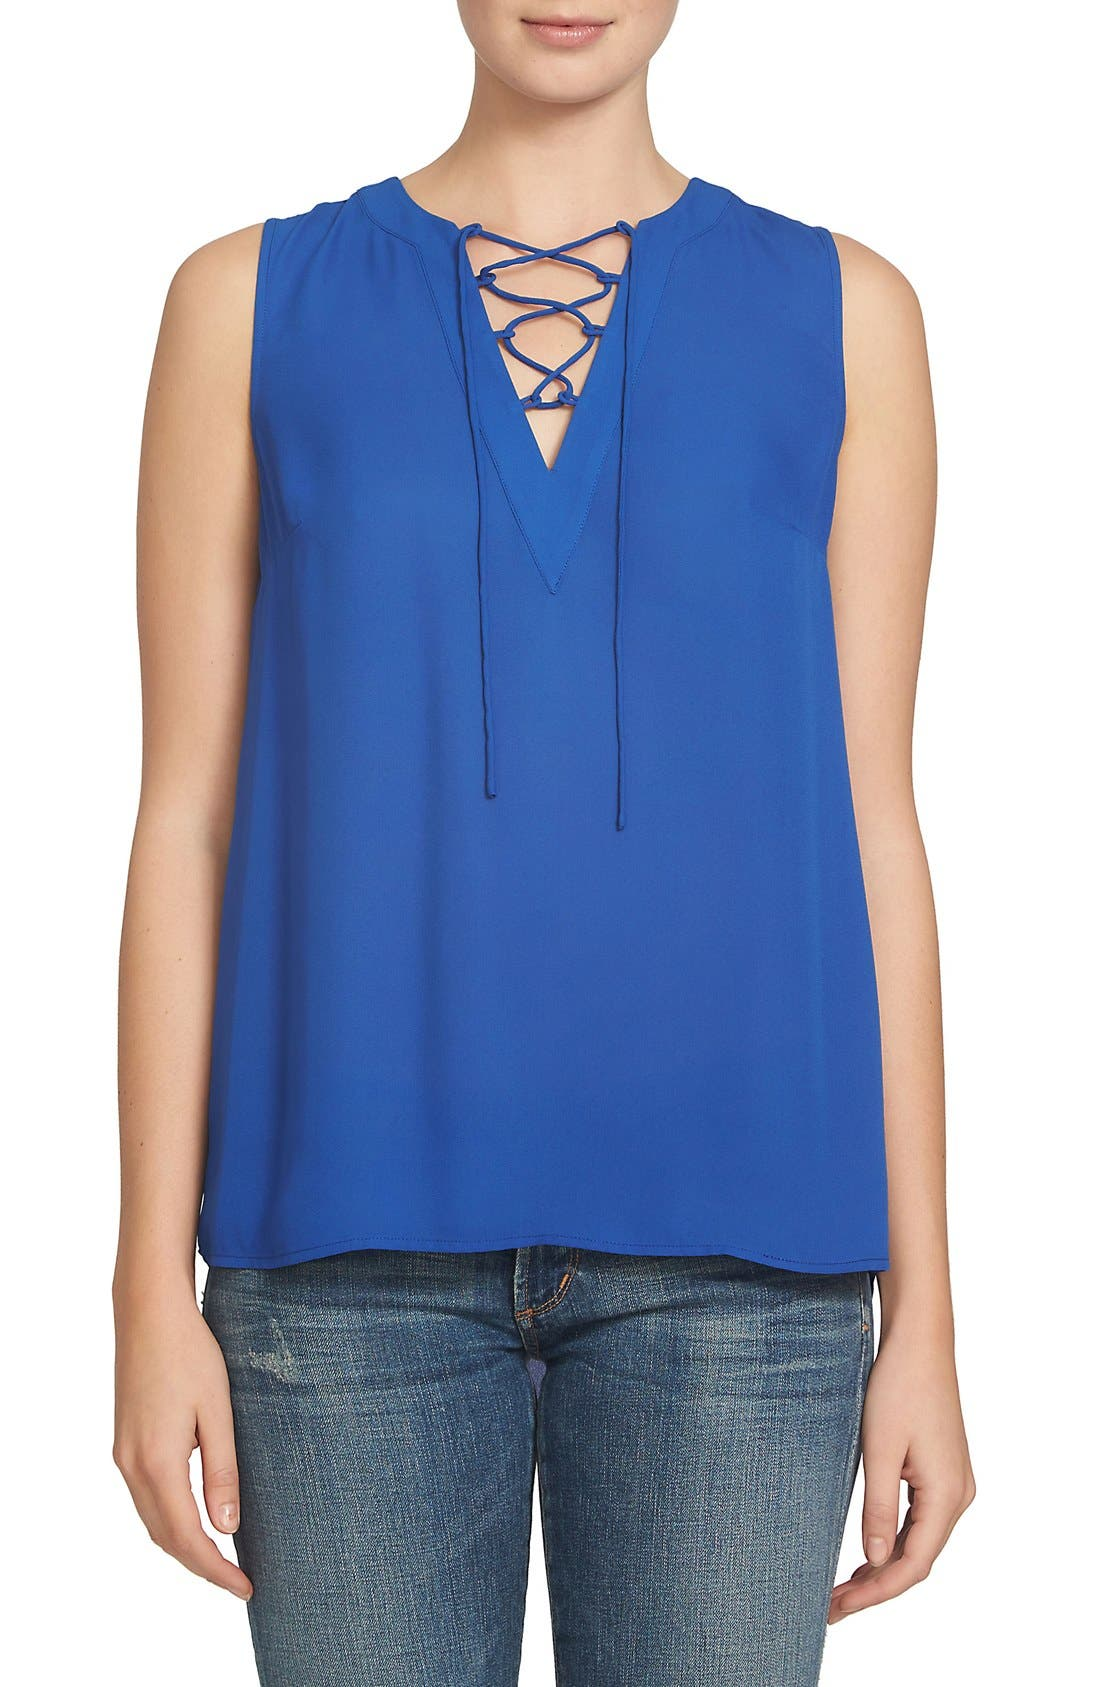 Alternate Image 1 Selected - 1.STATE Lace-Up Blouse